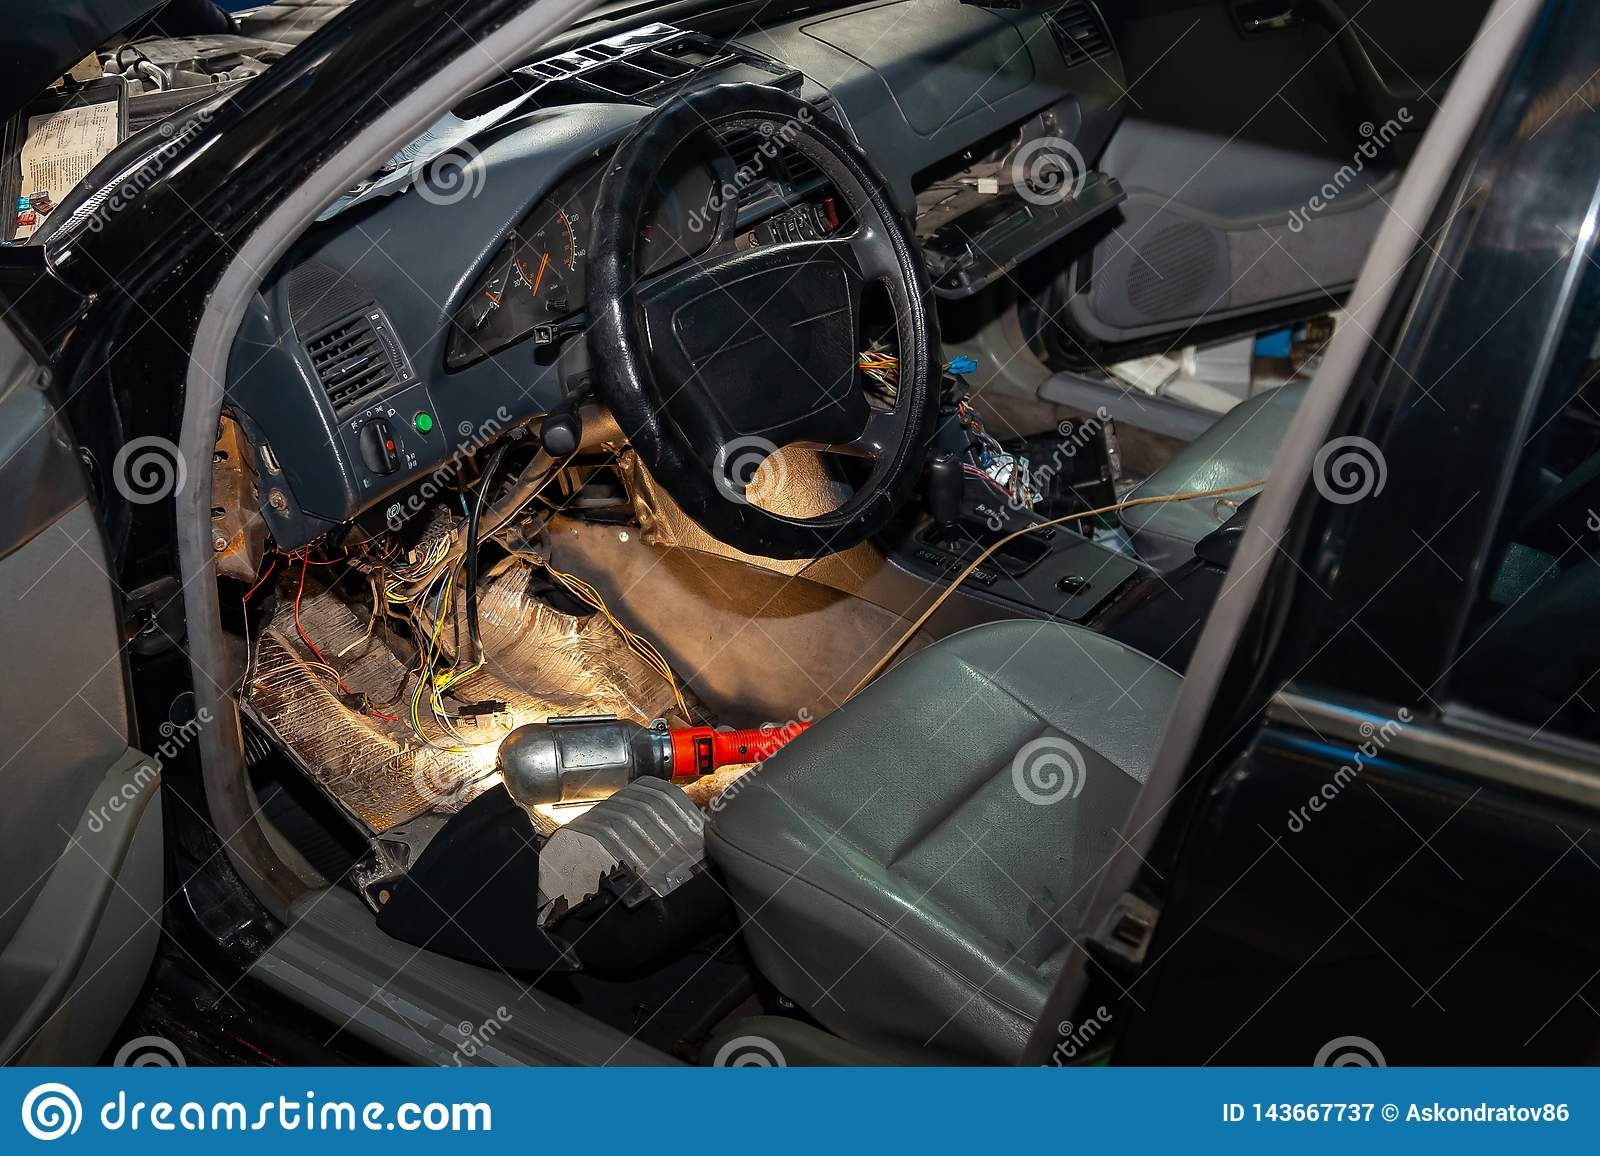 hight resolution of automotive wiring under the wheel of an old german car a disassembled dashboard for repairing